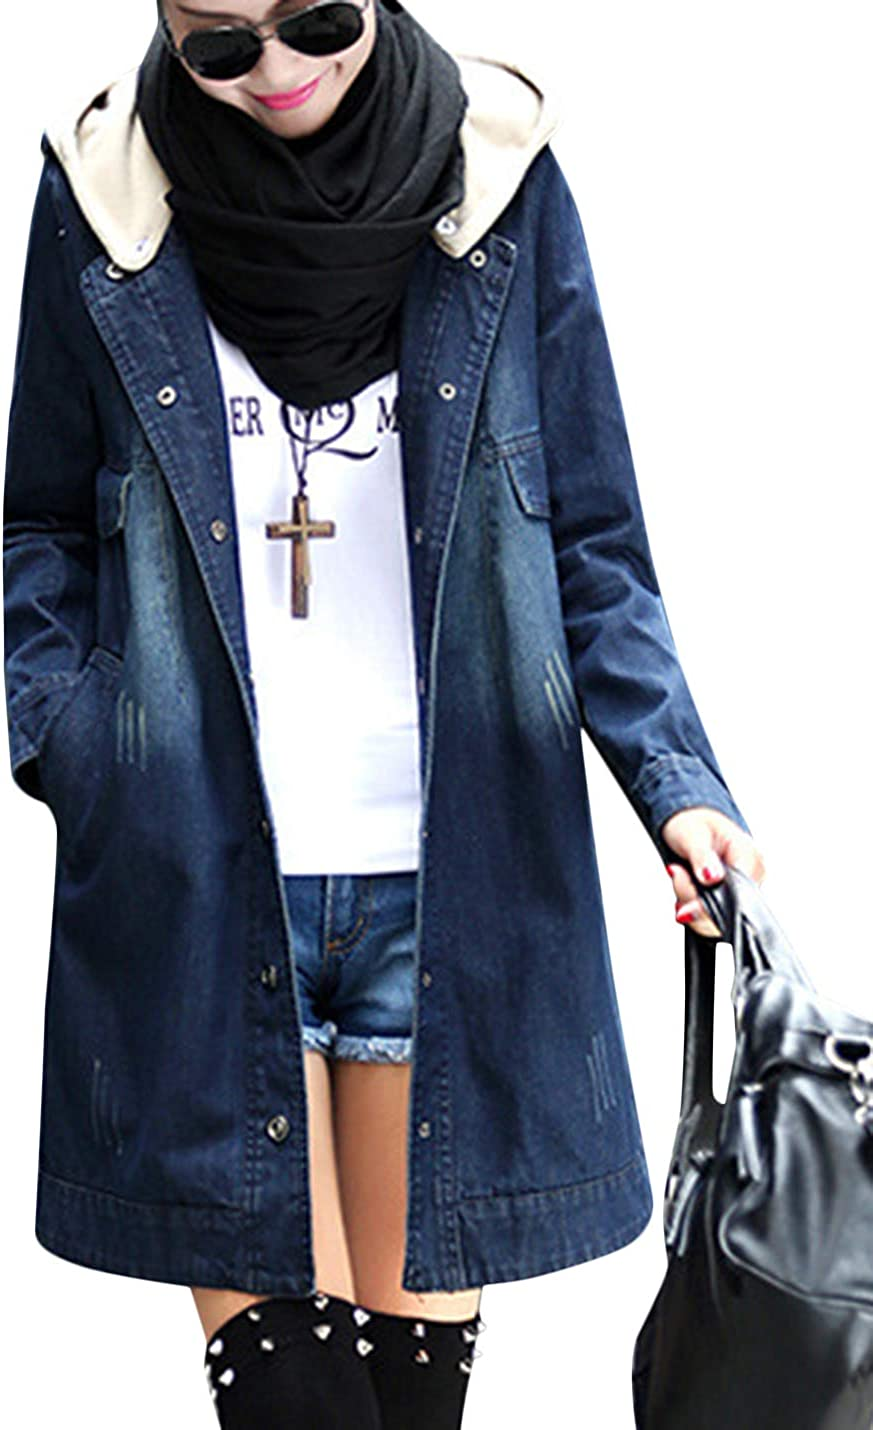 Tanming Women's Casual Hooded Buttons Up Epaulet Denim Jean Jacket Coats